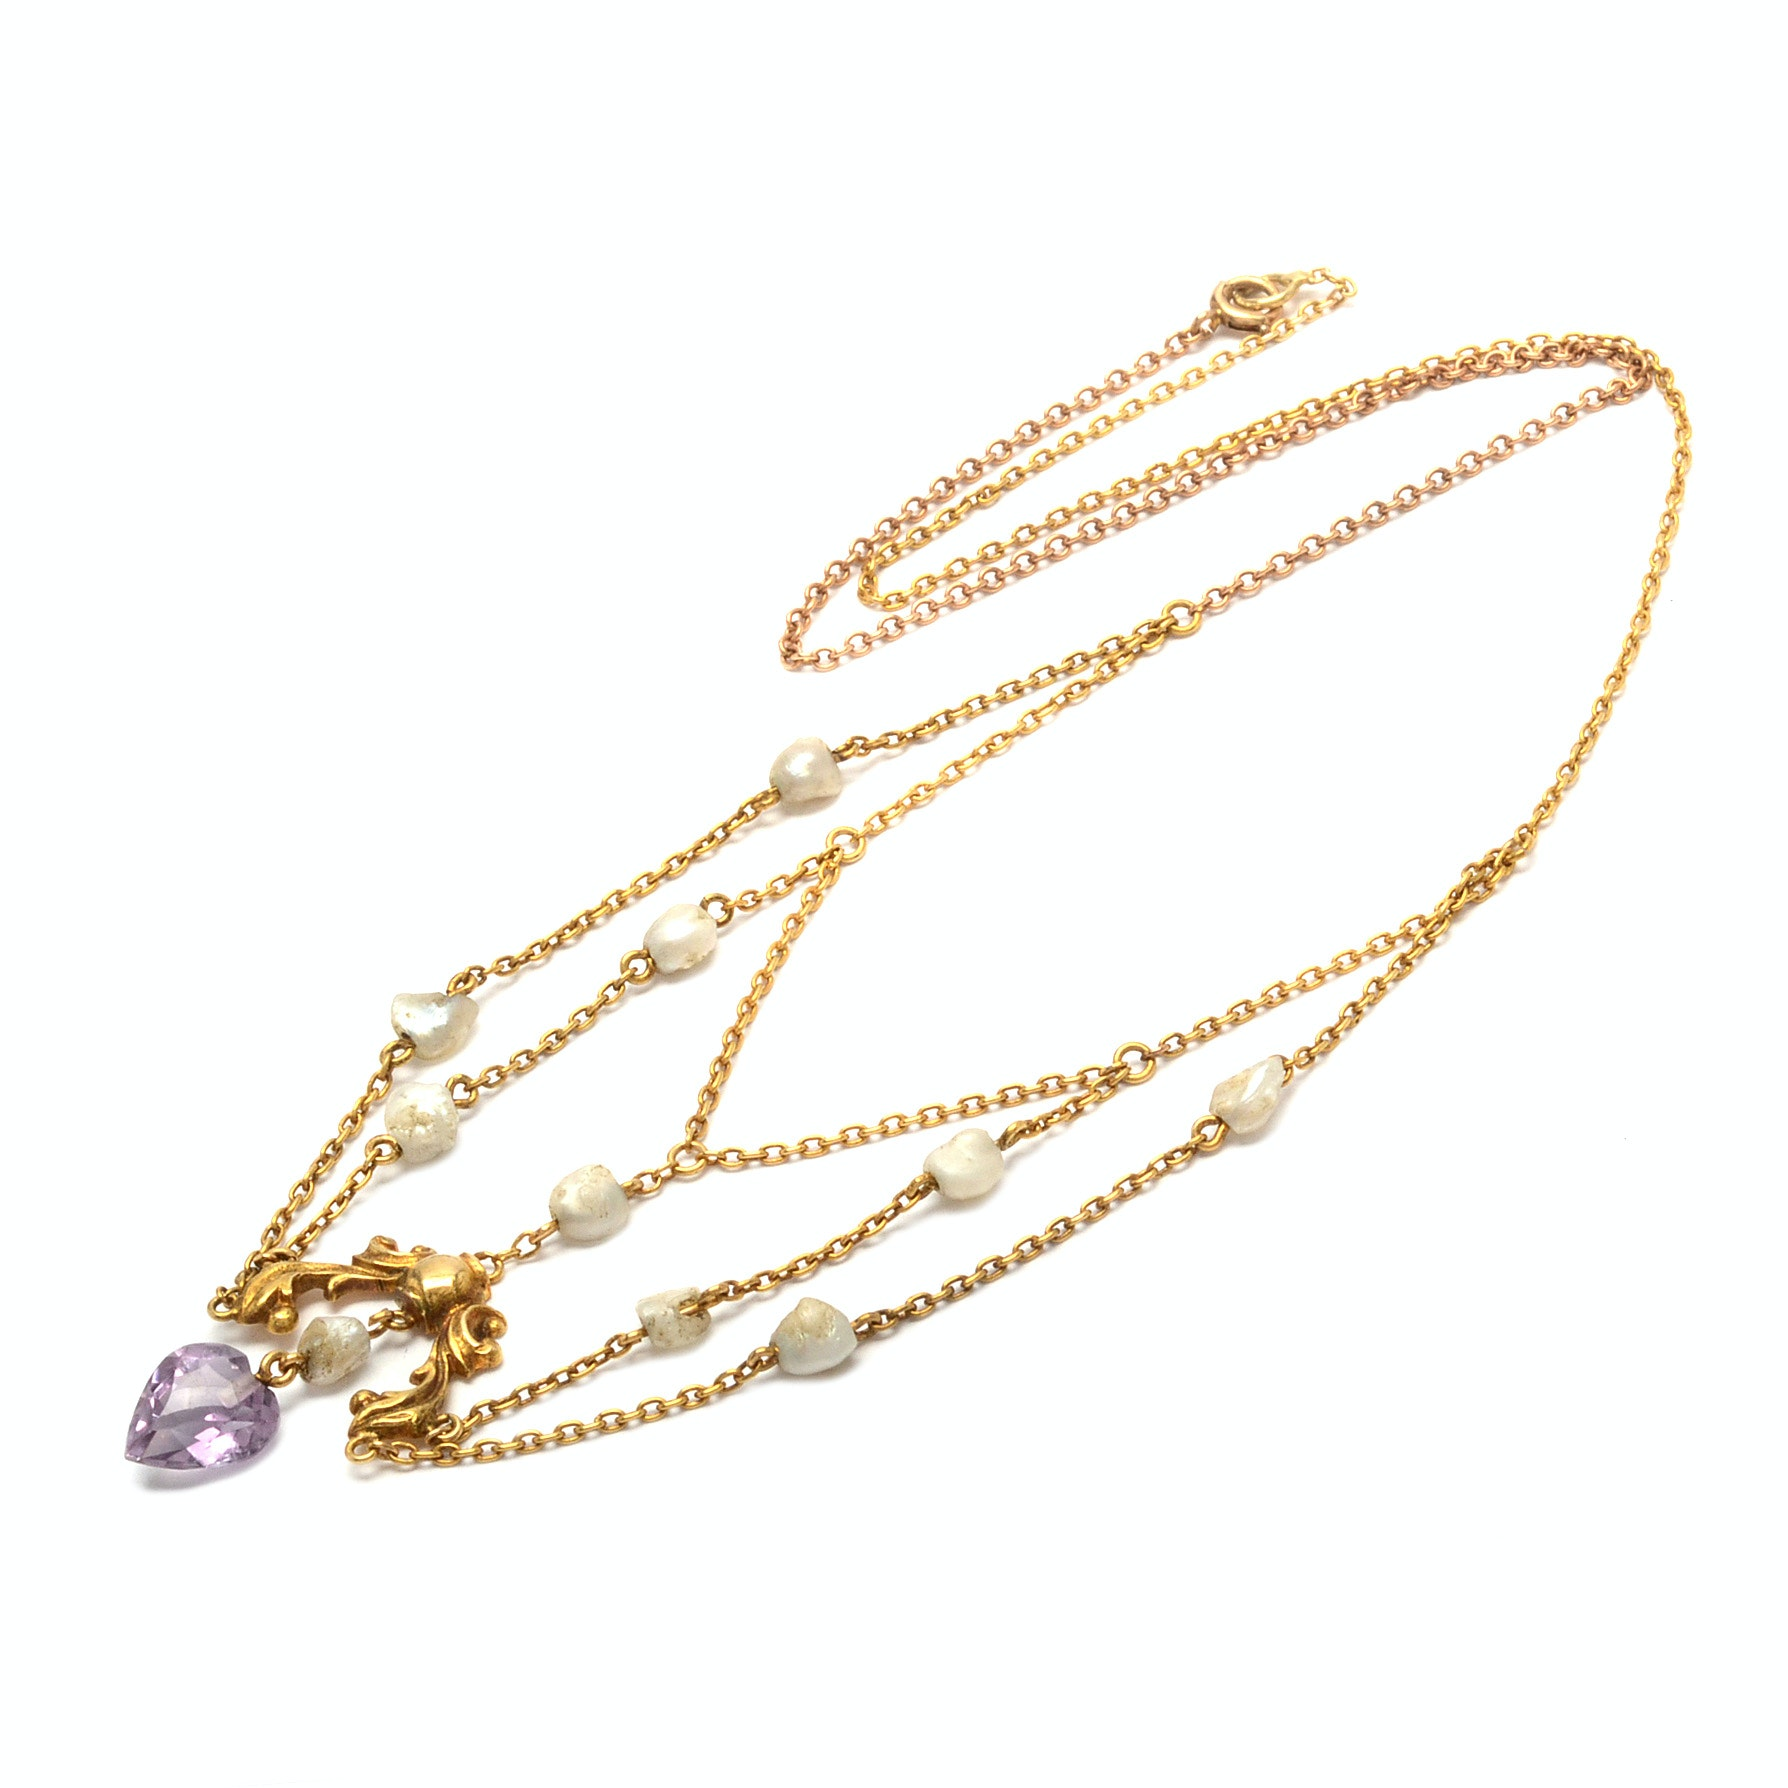 Victorian 14K Yellow Gold Amethyst and Pearl Lavalier Necklace